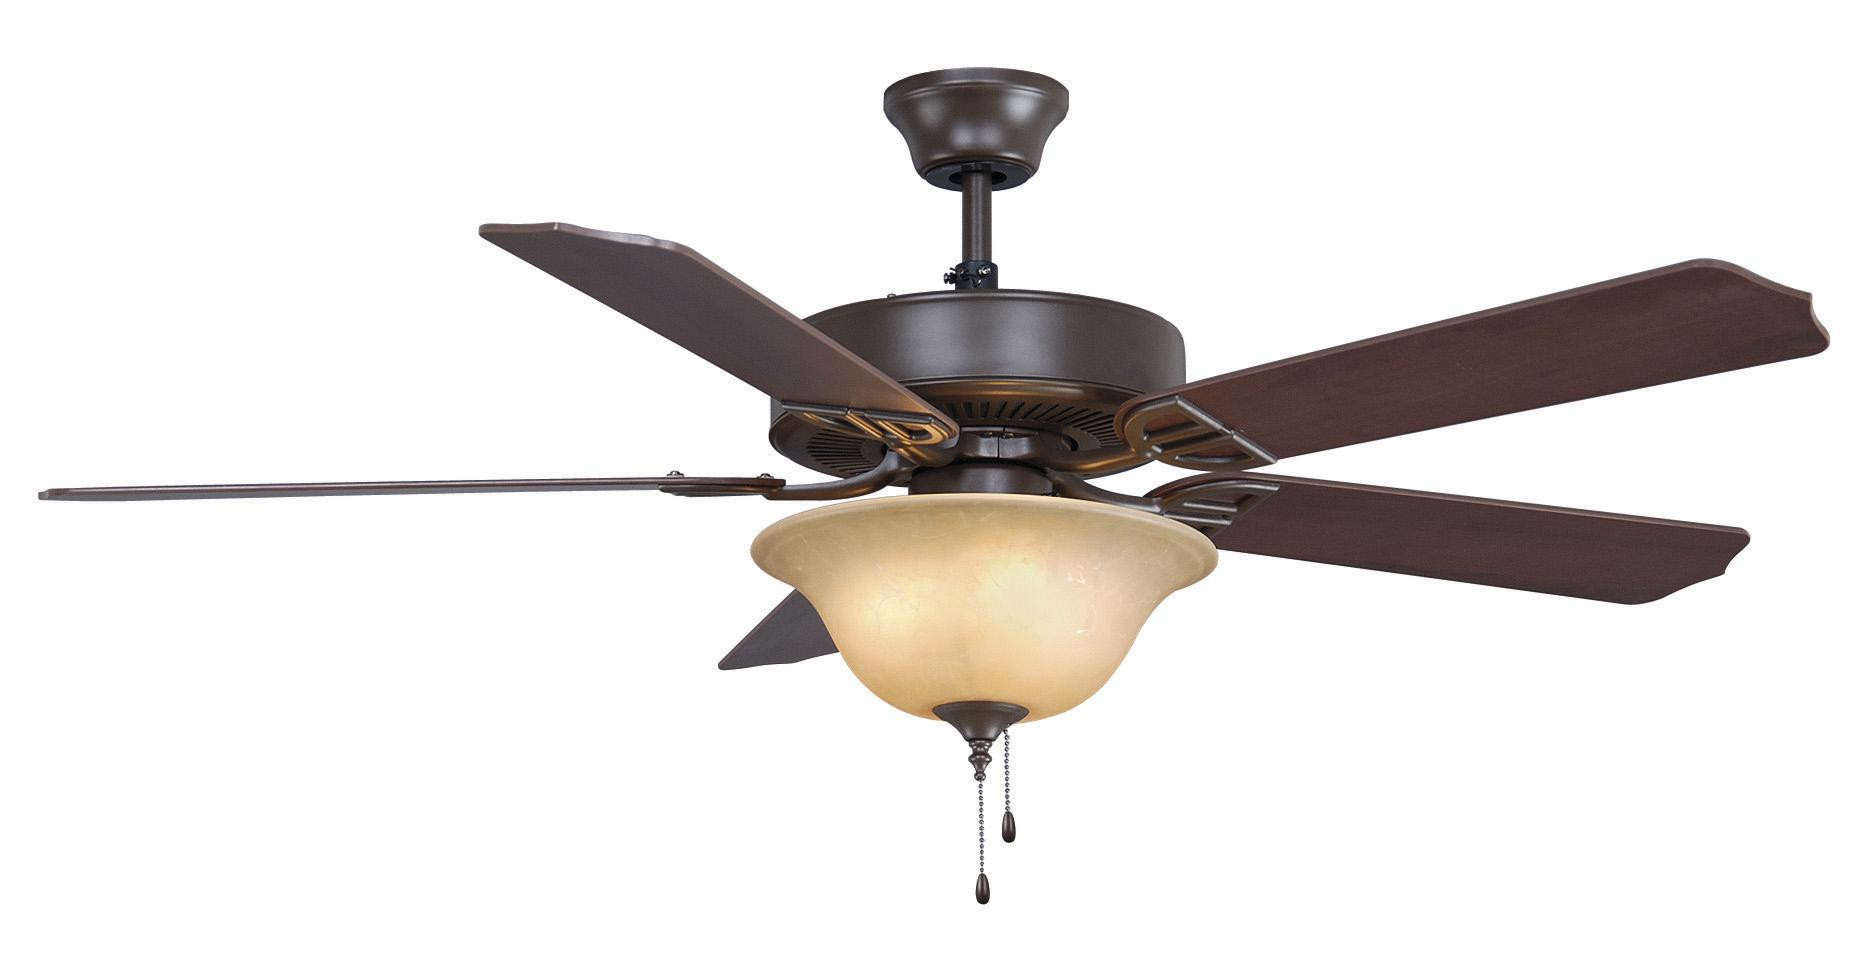 Ceiling fans with good lighting - Ceiling Fan Light 10 Ways To Up Your Space Warisan Lighting